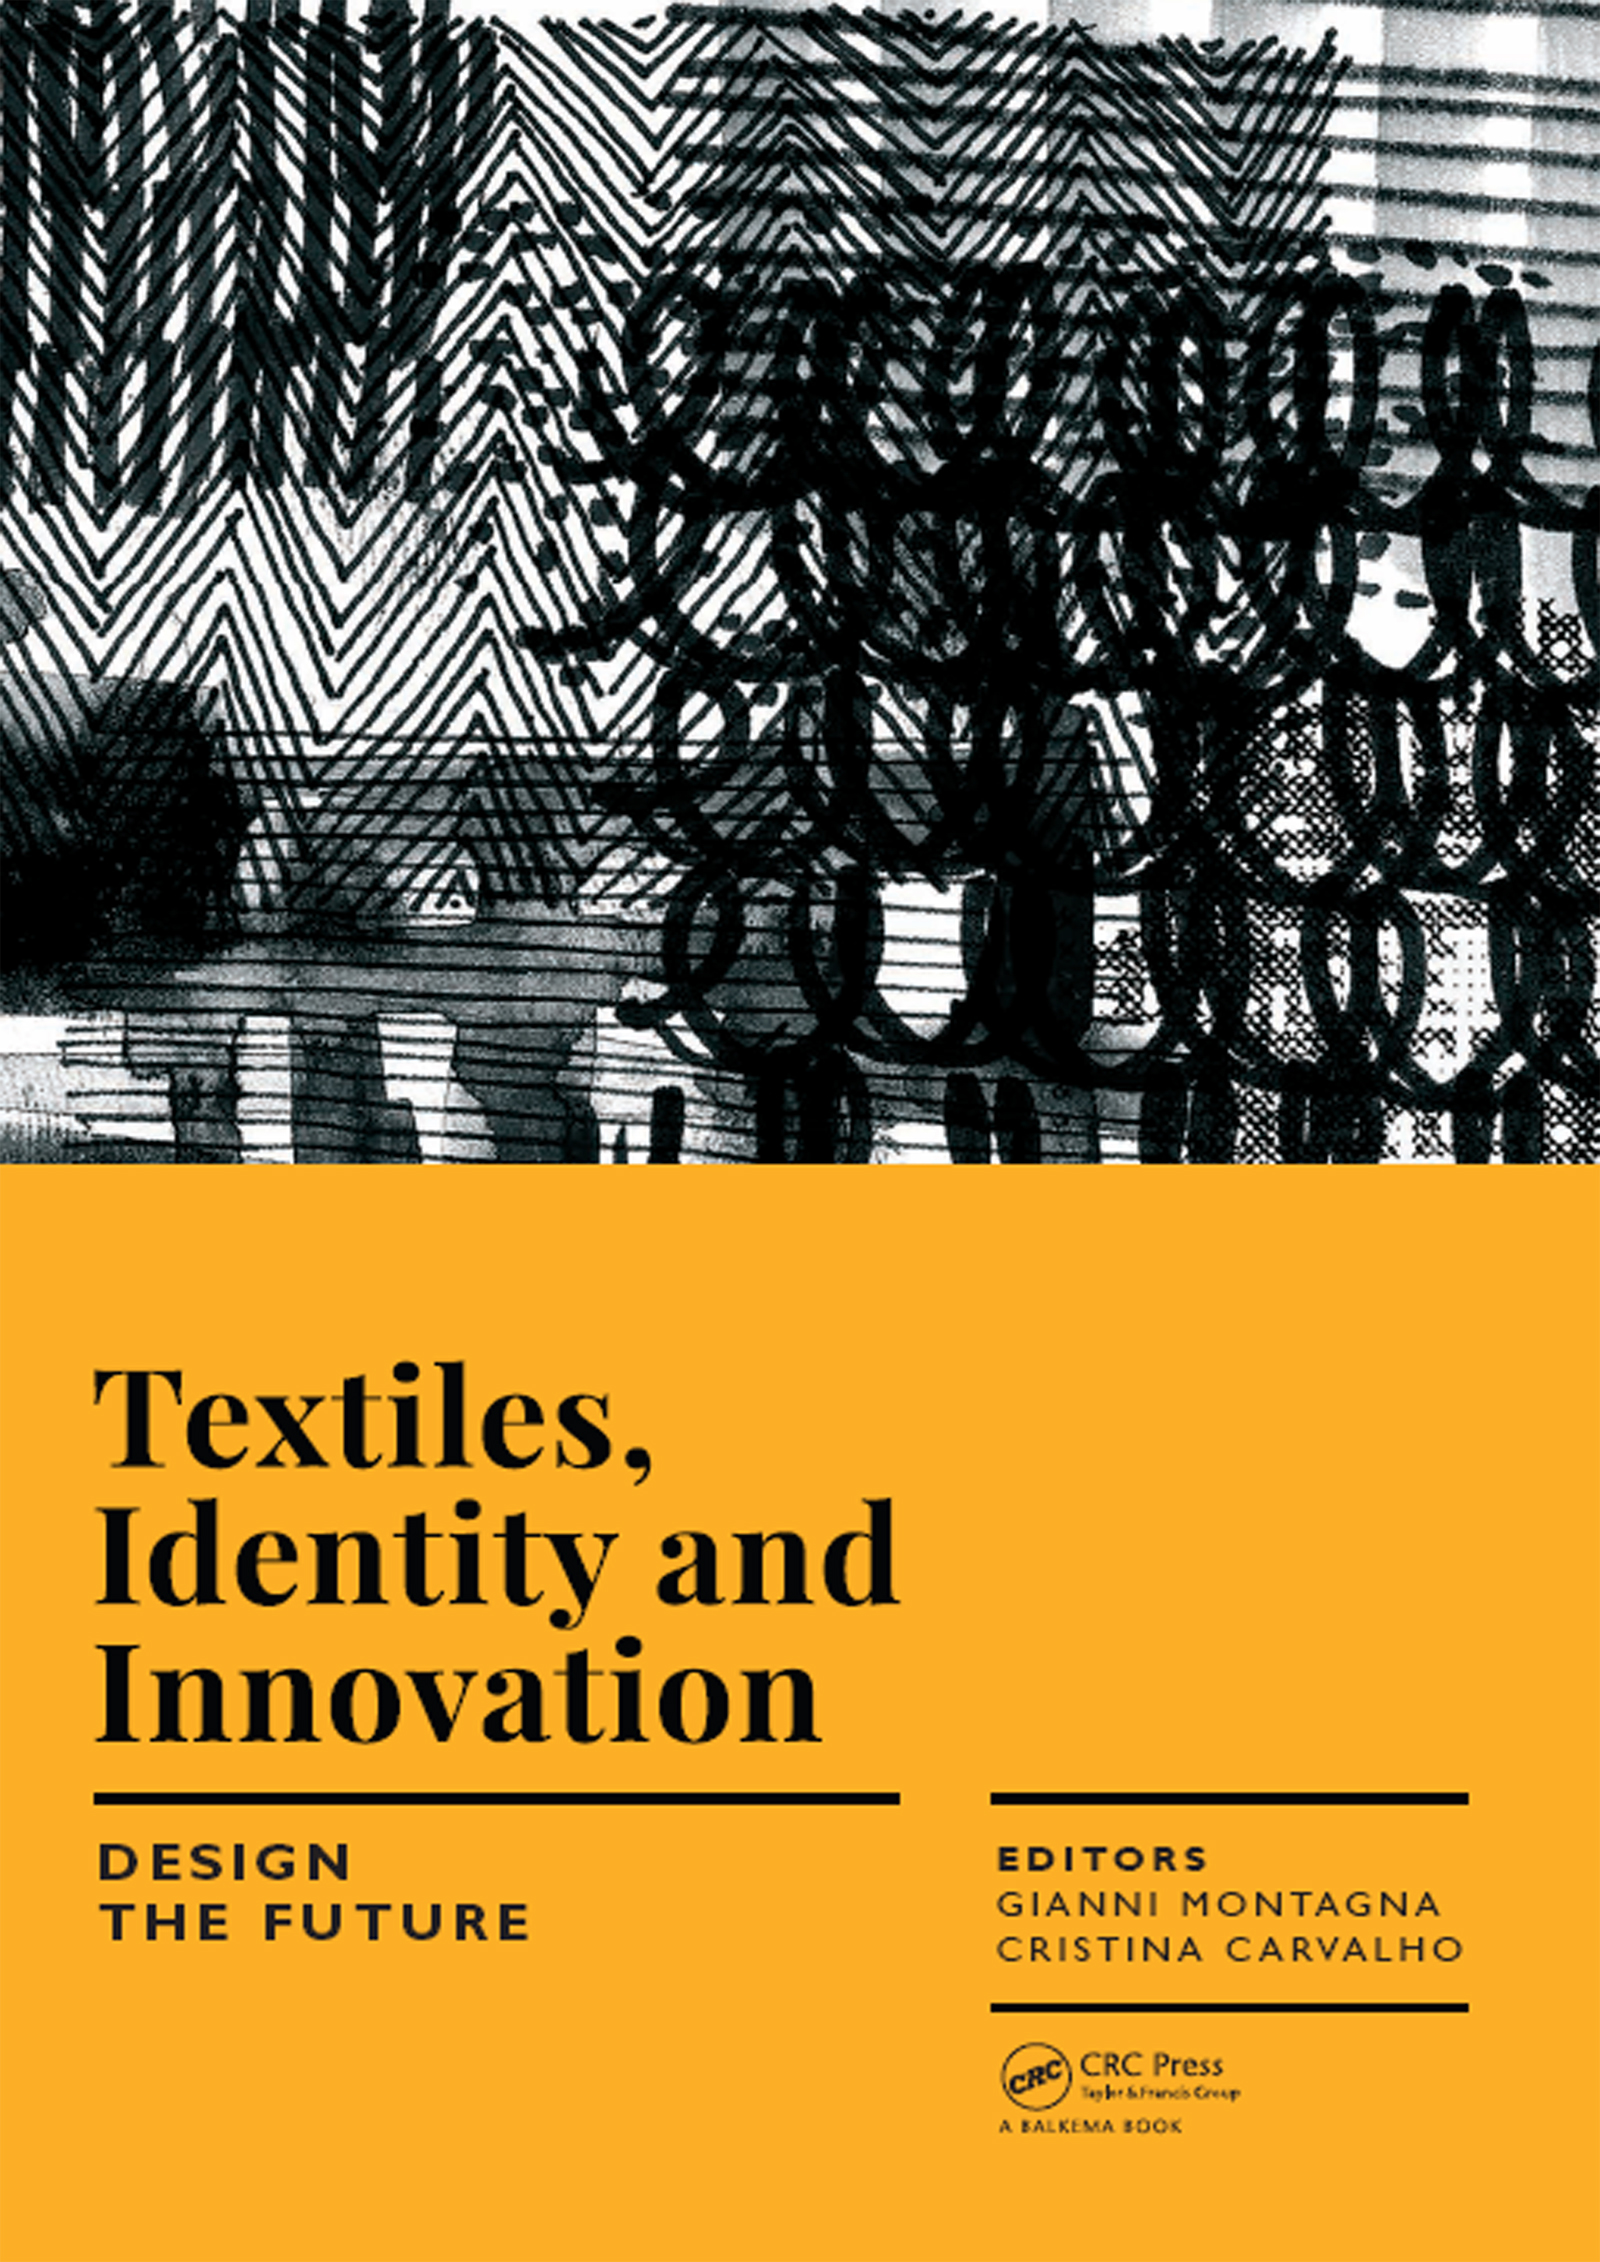 Textiles, Identity and Innovation: Design the Future: Proceedings of the 1st International Textile Design Conference (D_TEX 2017), November 2-4, 2017, Lisbon, Portugal book cover